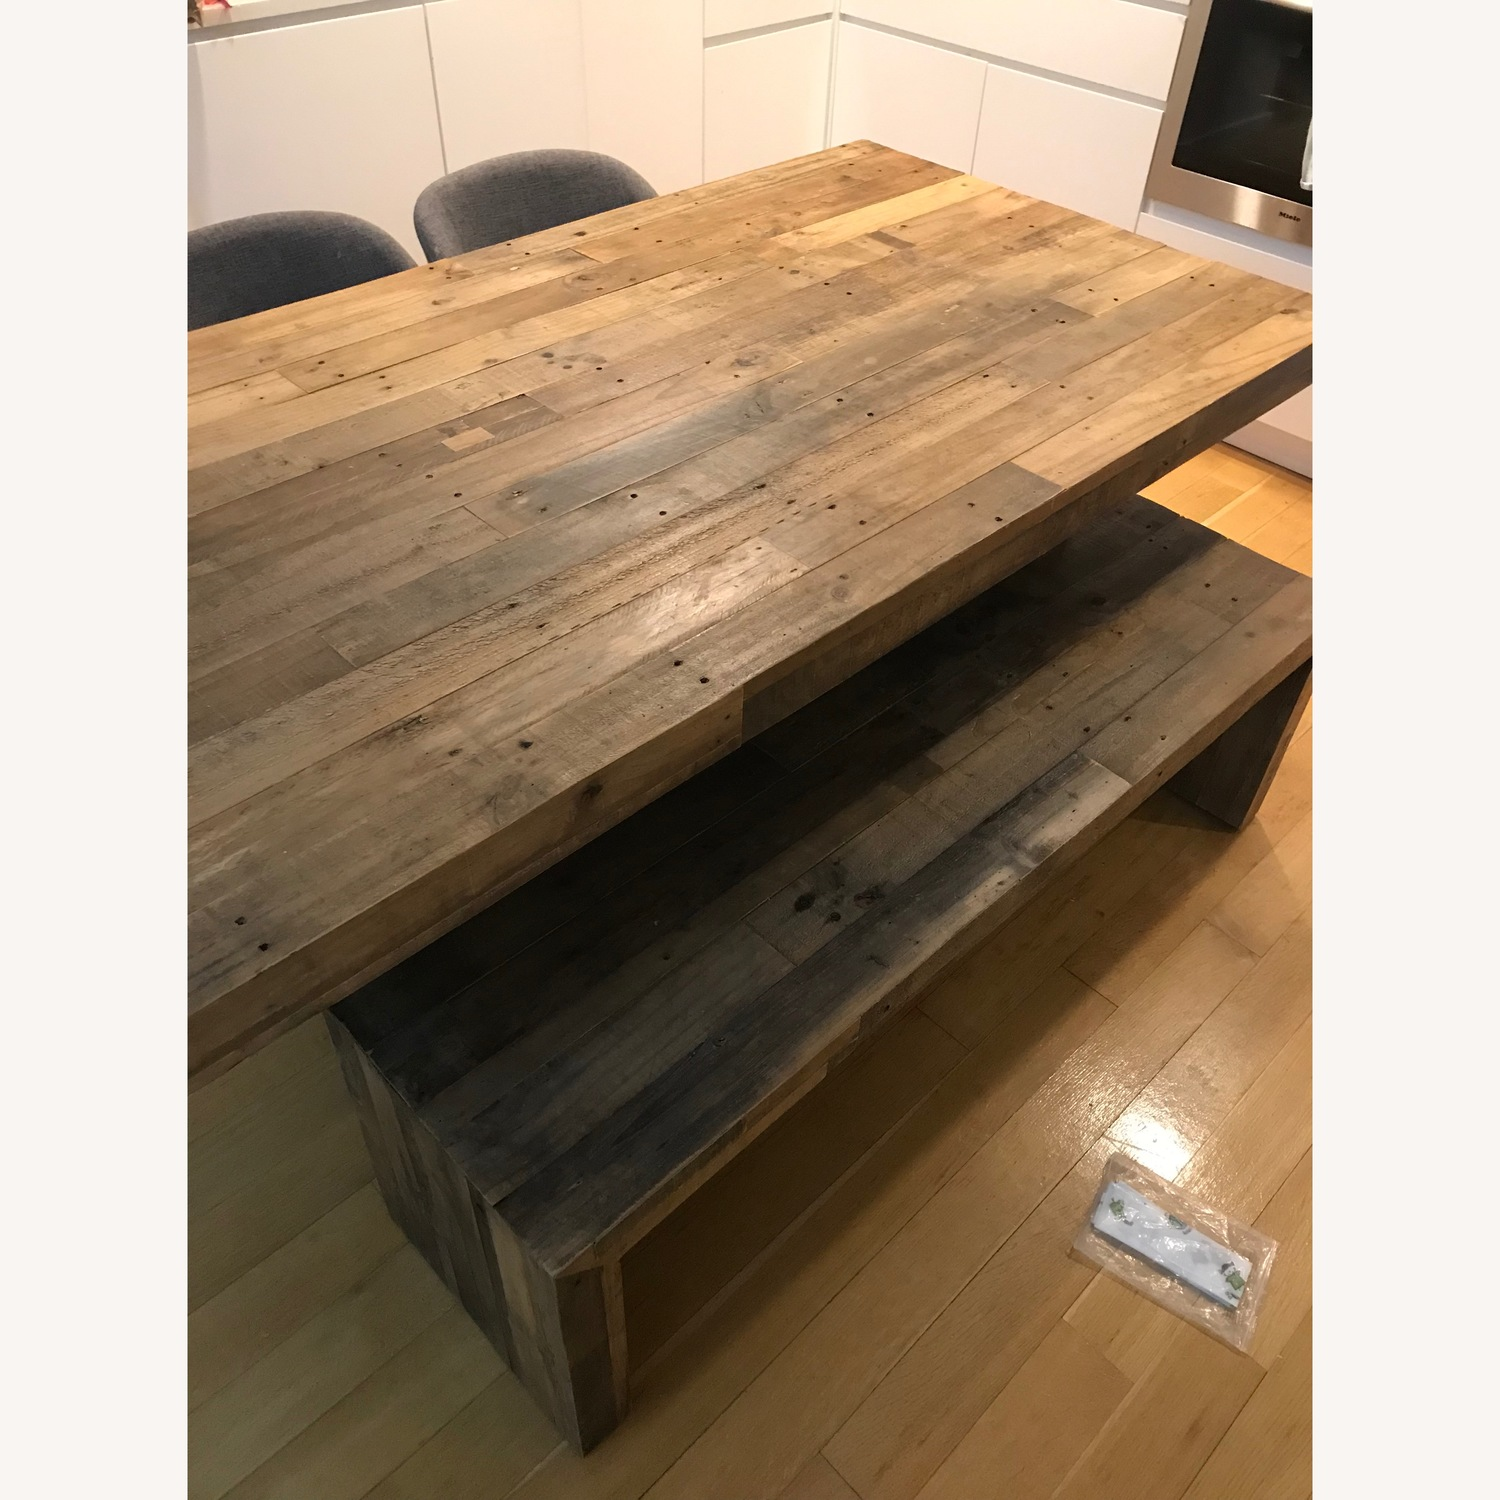 West Elm Reclaimed Pine Emmerson 72 Table and 58 Bench - image-1